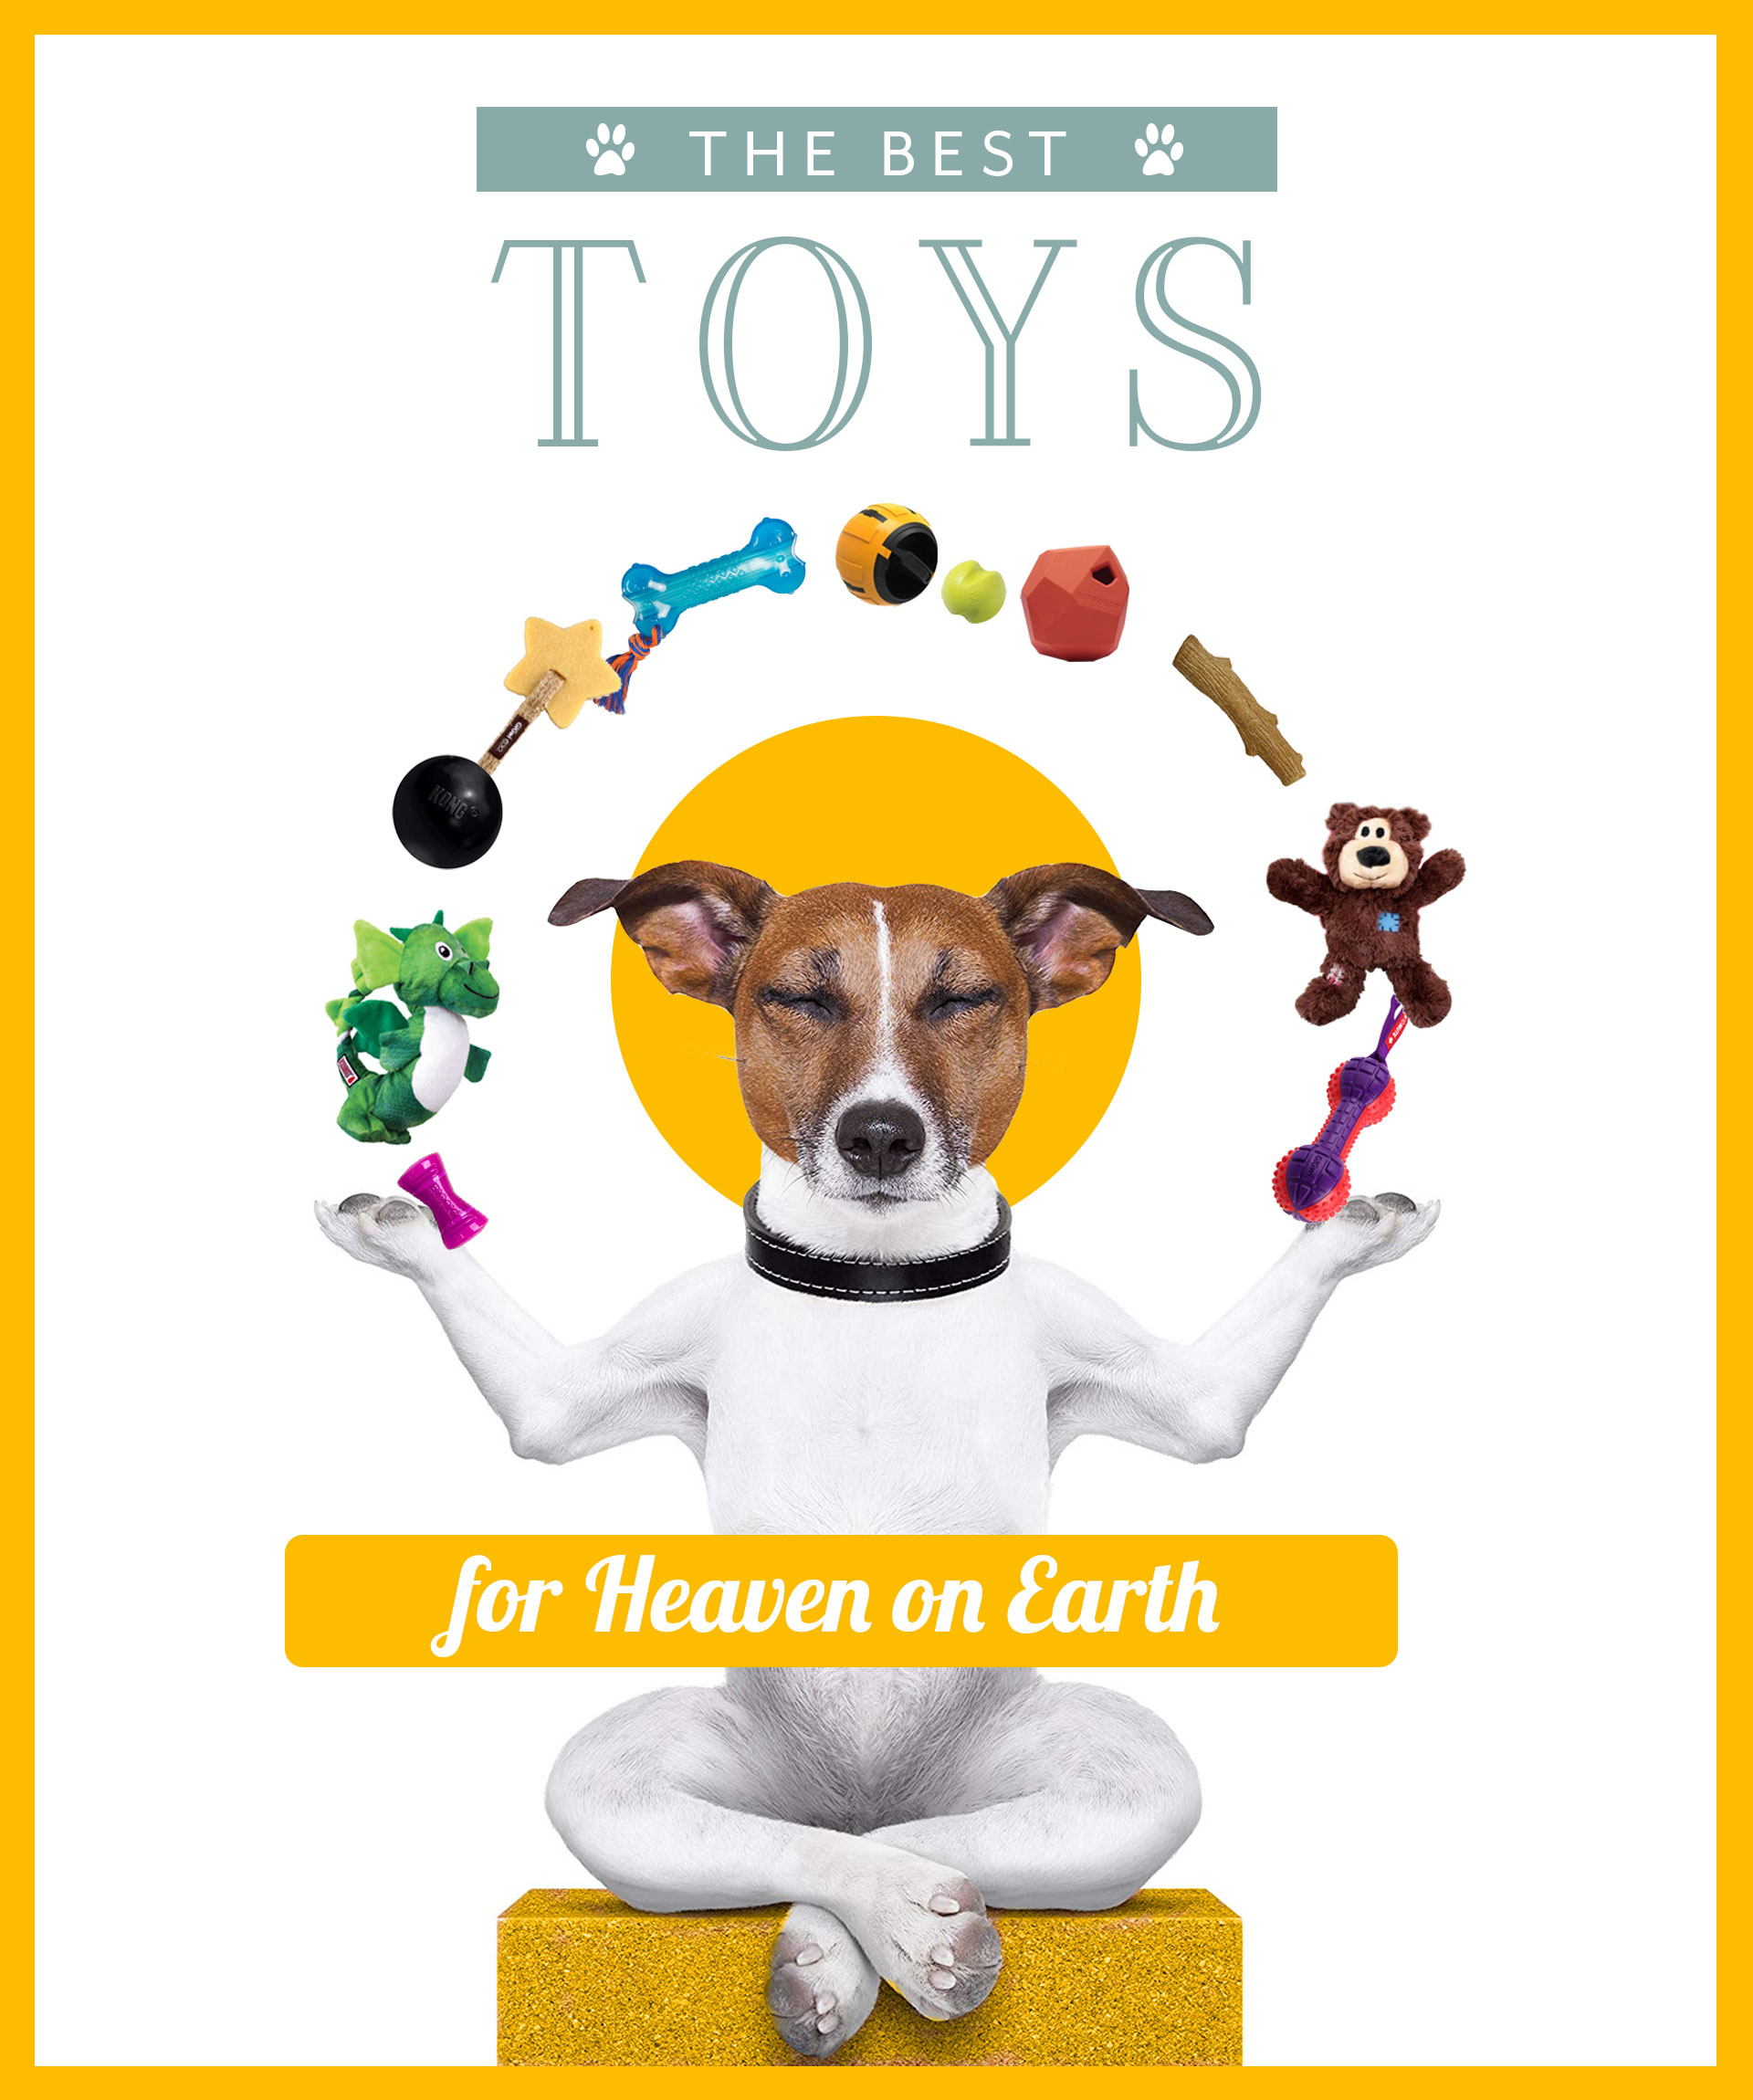 Toys for heaven on Earth